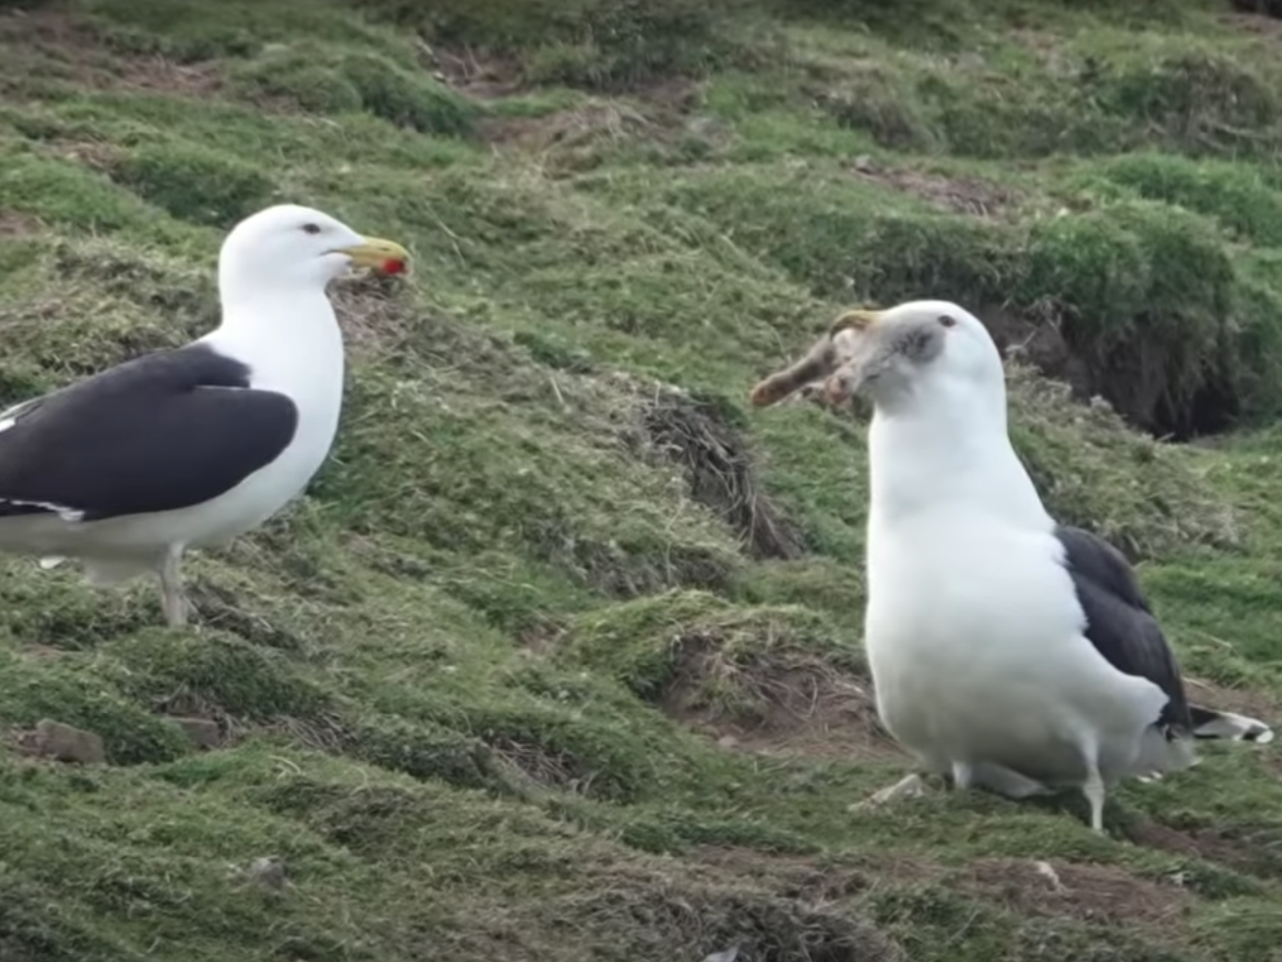 Great black-backed gull filmed swallowing rabbit whole thumbnail